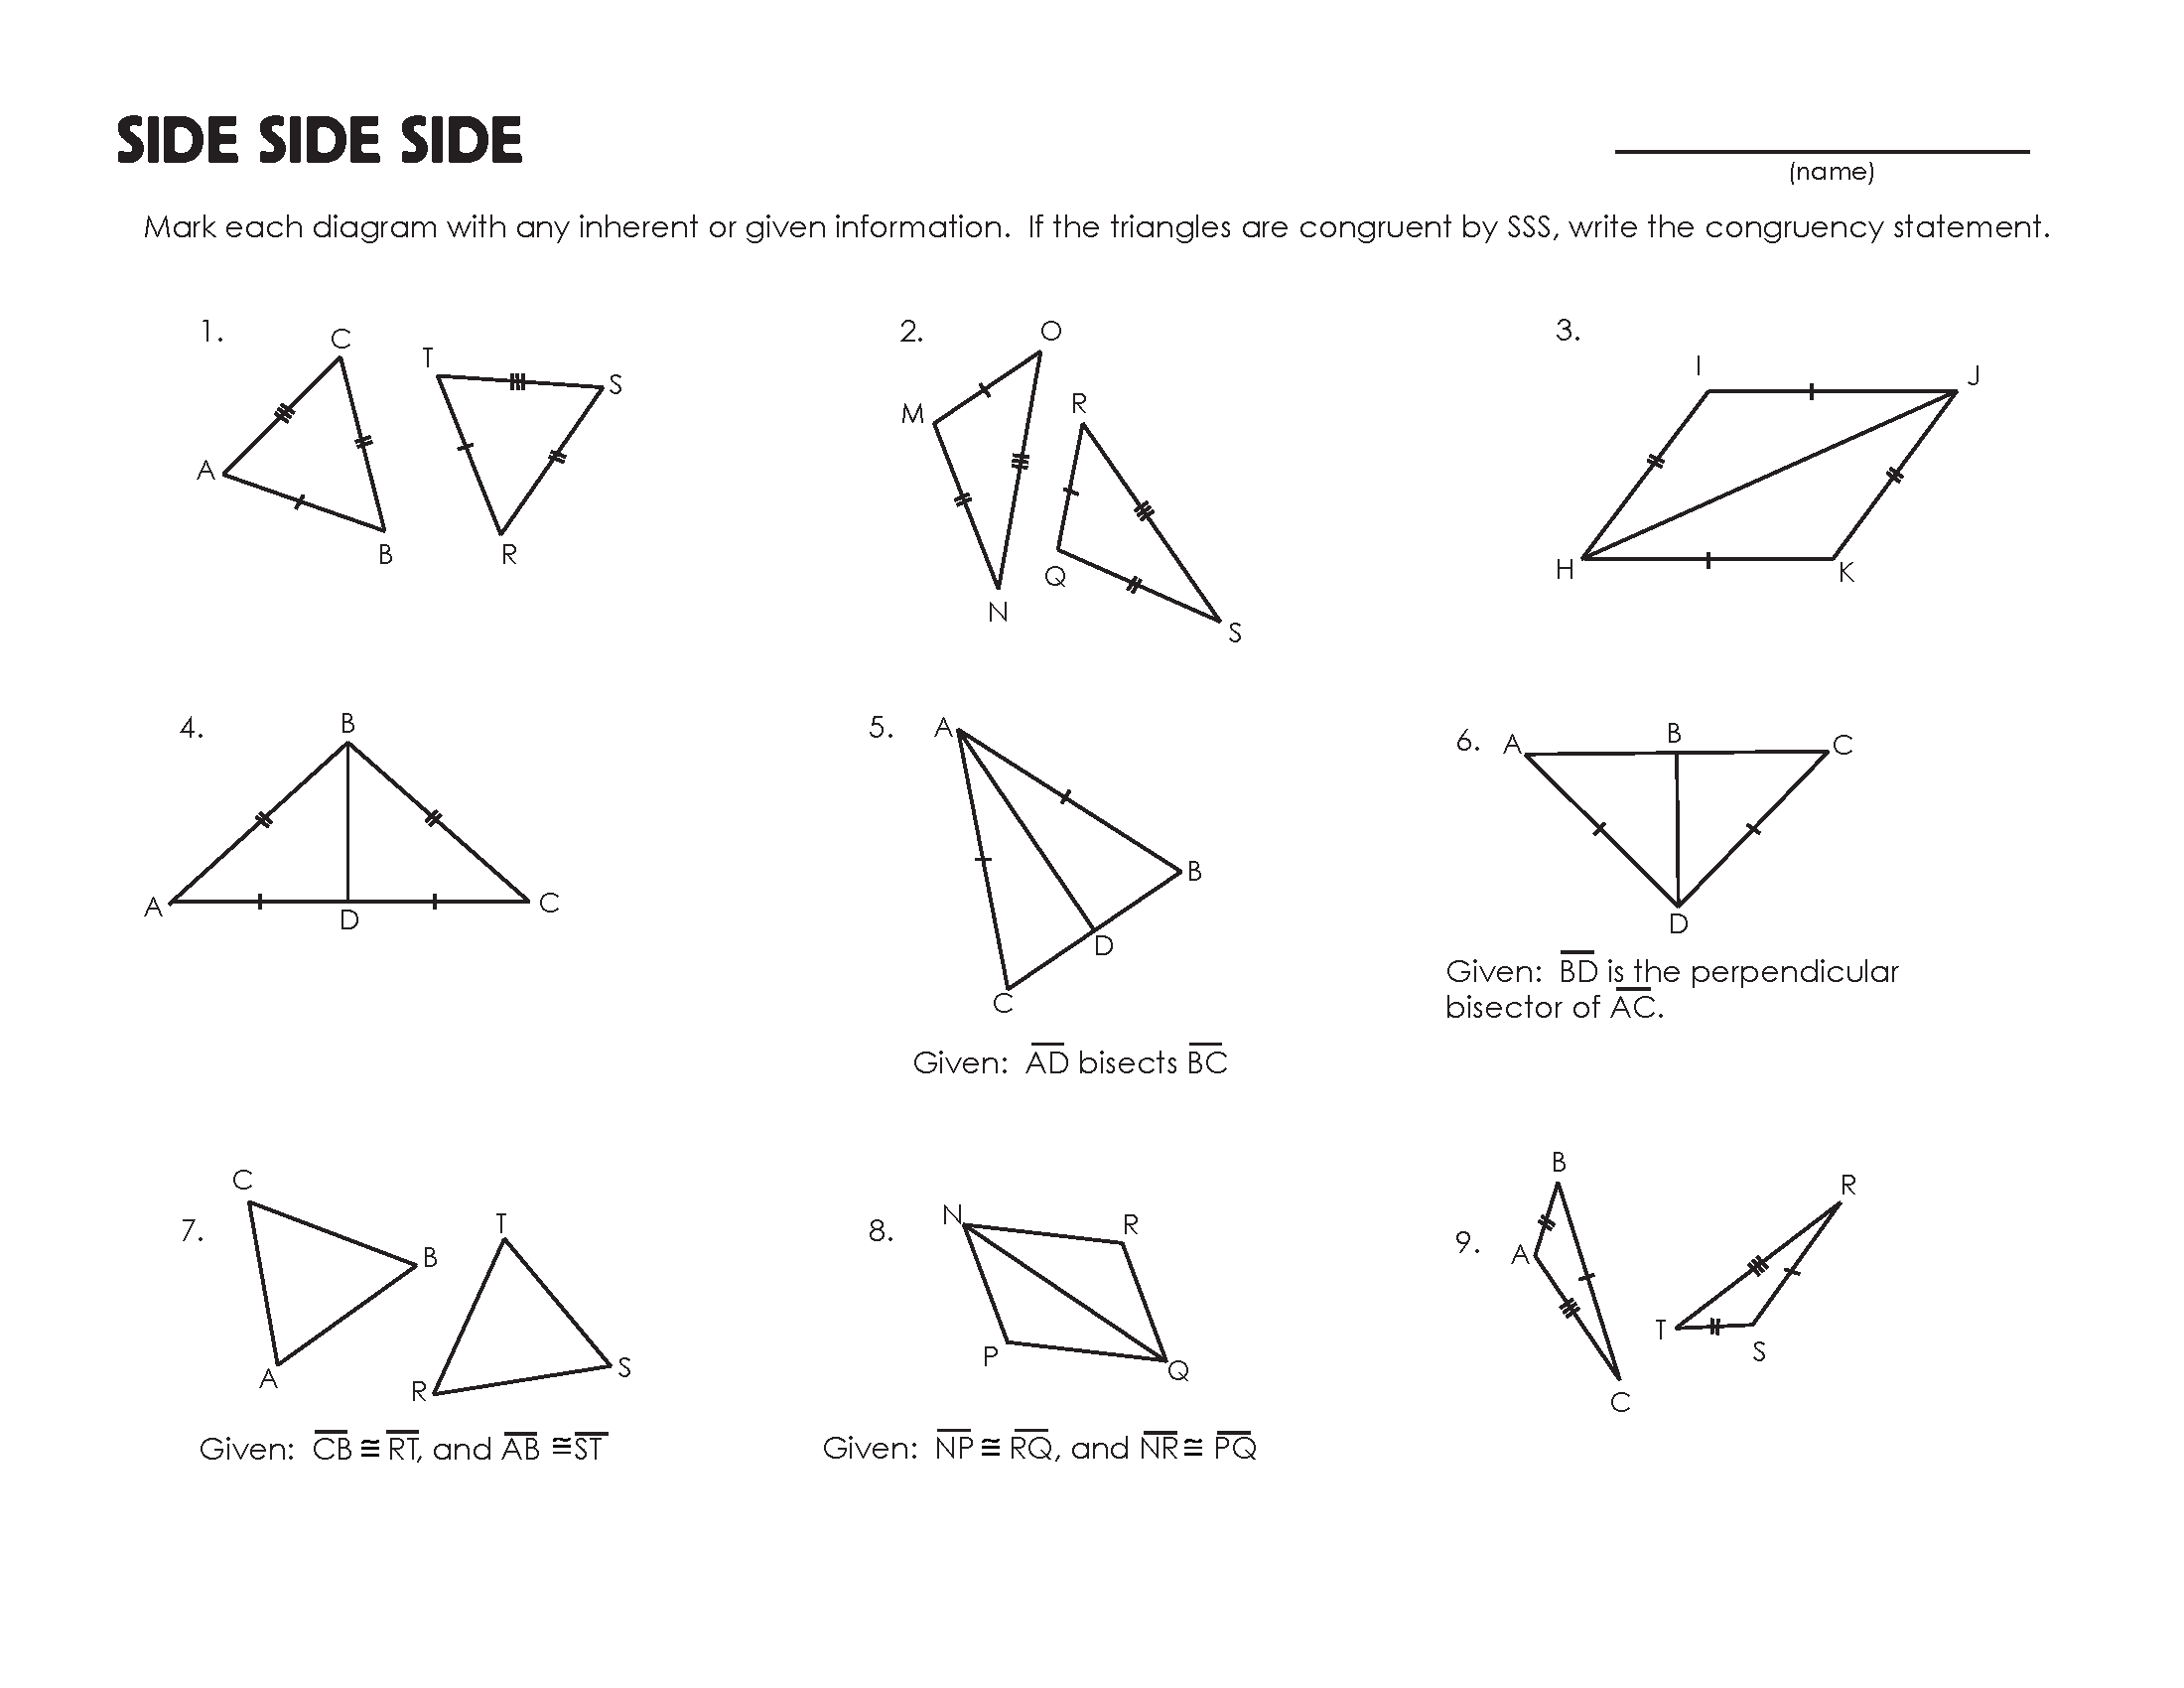 worksheet Congruent Triangles And Similar Triangles Worksheet Answers congruent triangles worksheet worksheets and activities activity mrmillermath